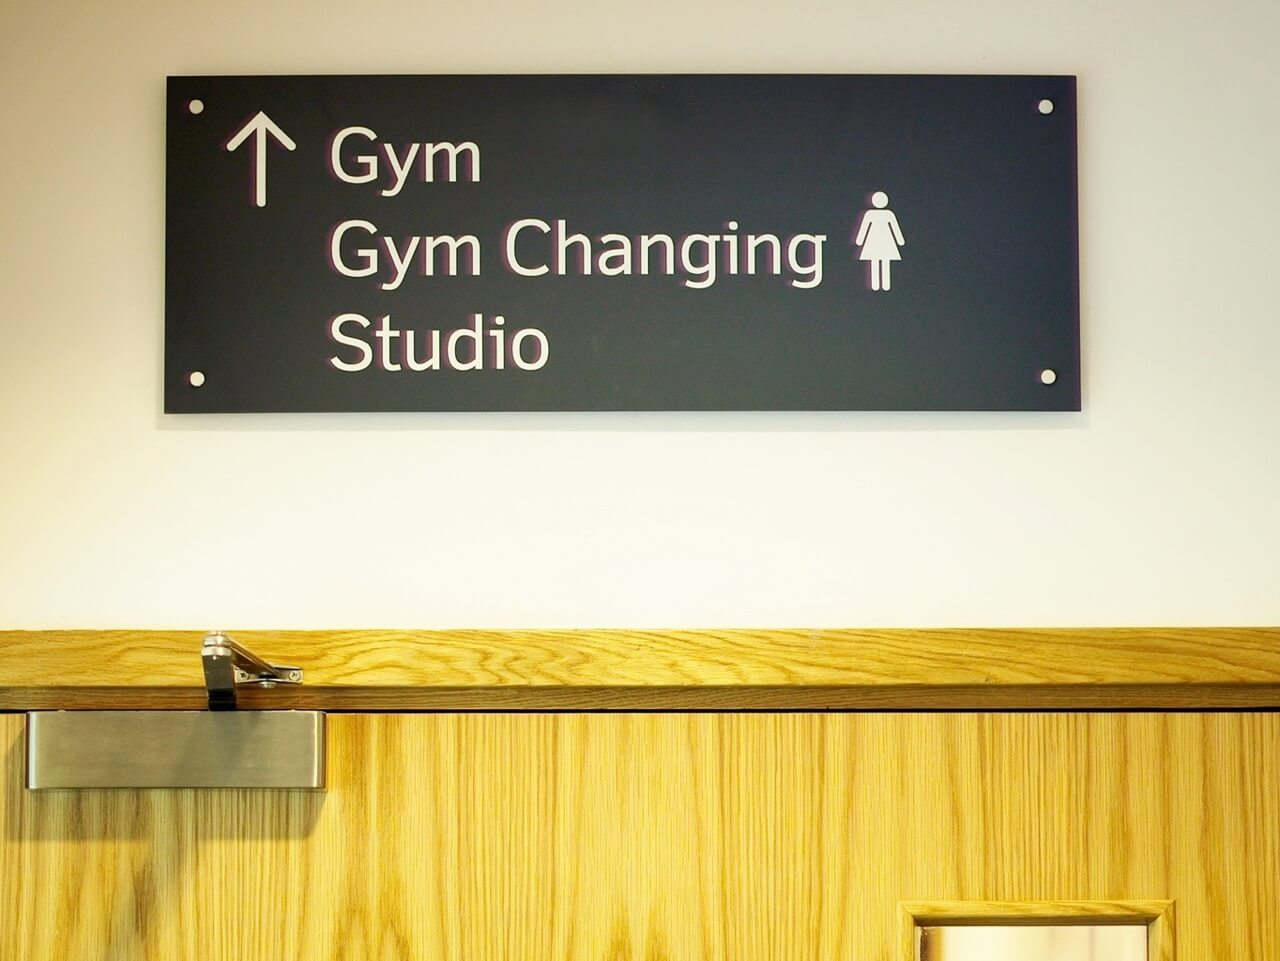 Directional signage and information graphics are positioned above doors for added visibility in busy public spaces like gym facilities